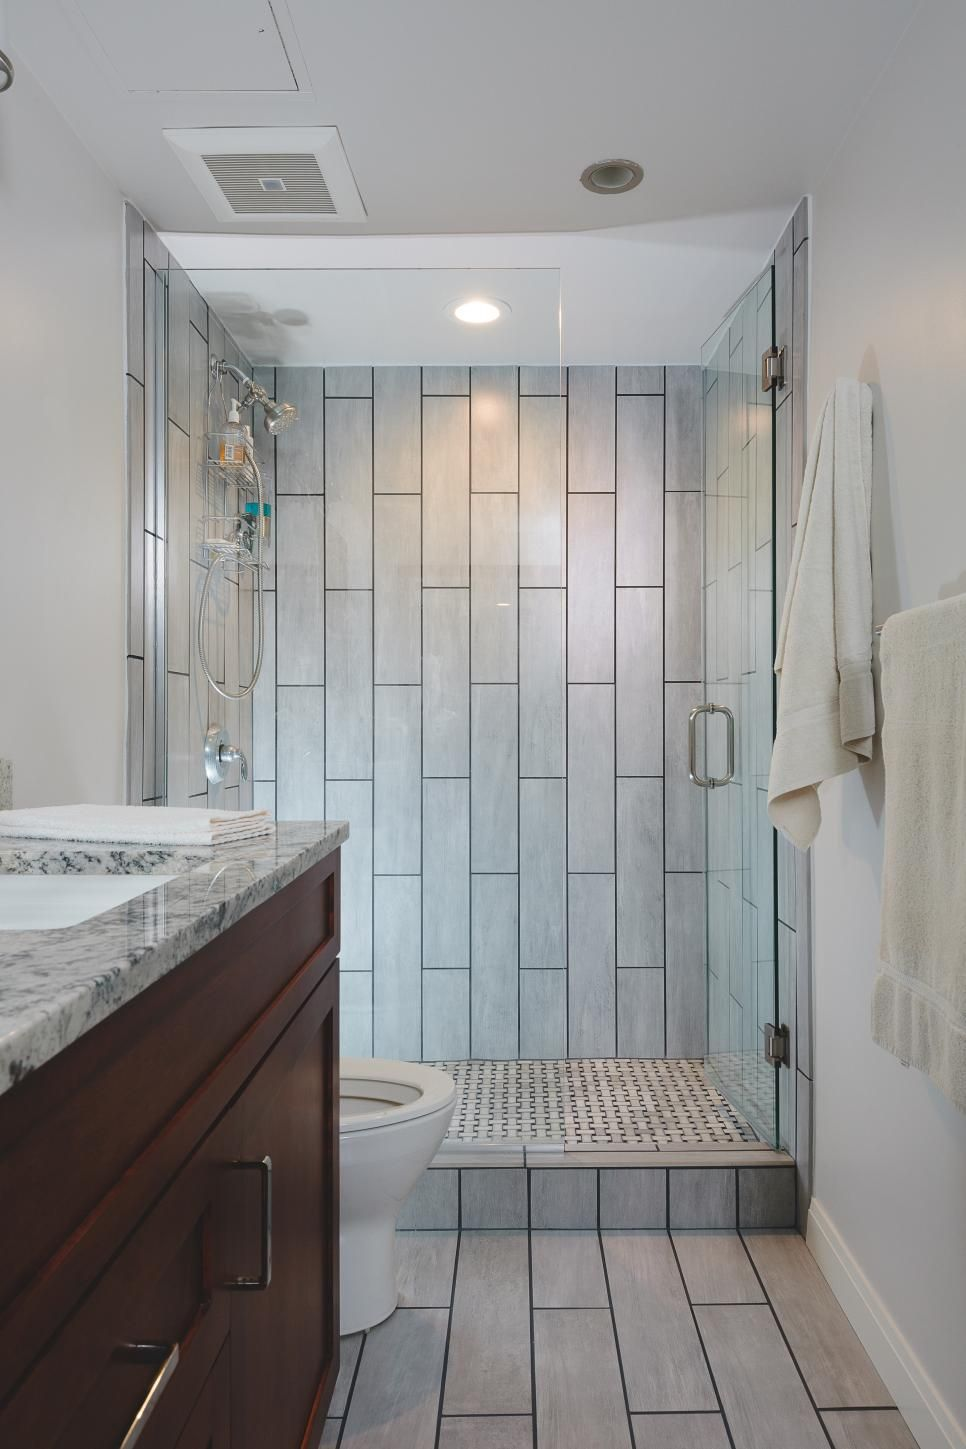 15 Ways To Refresh Your Walls On A Budget Bathroom Design Small